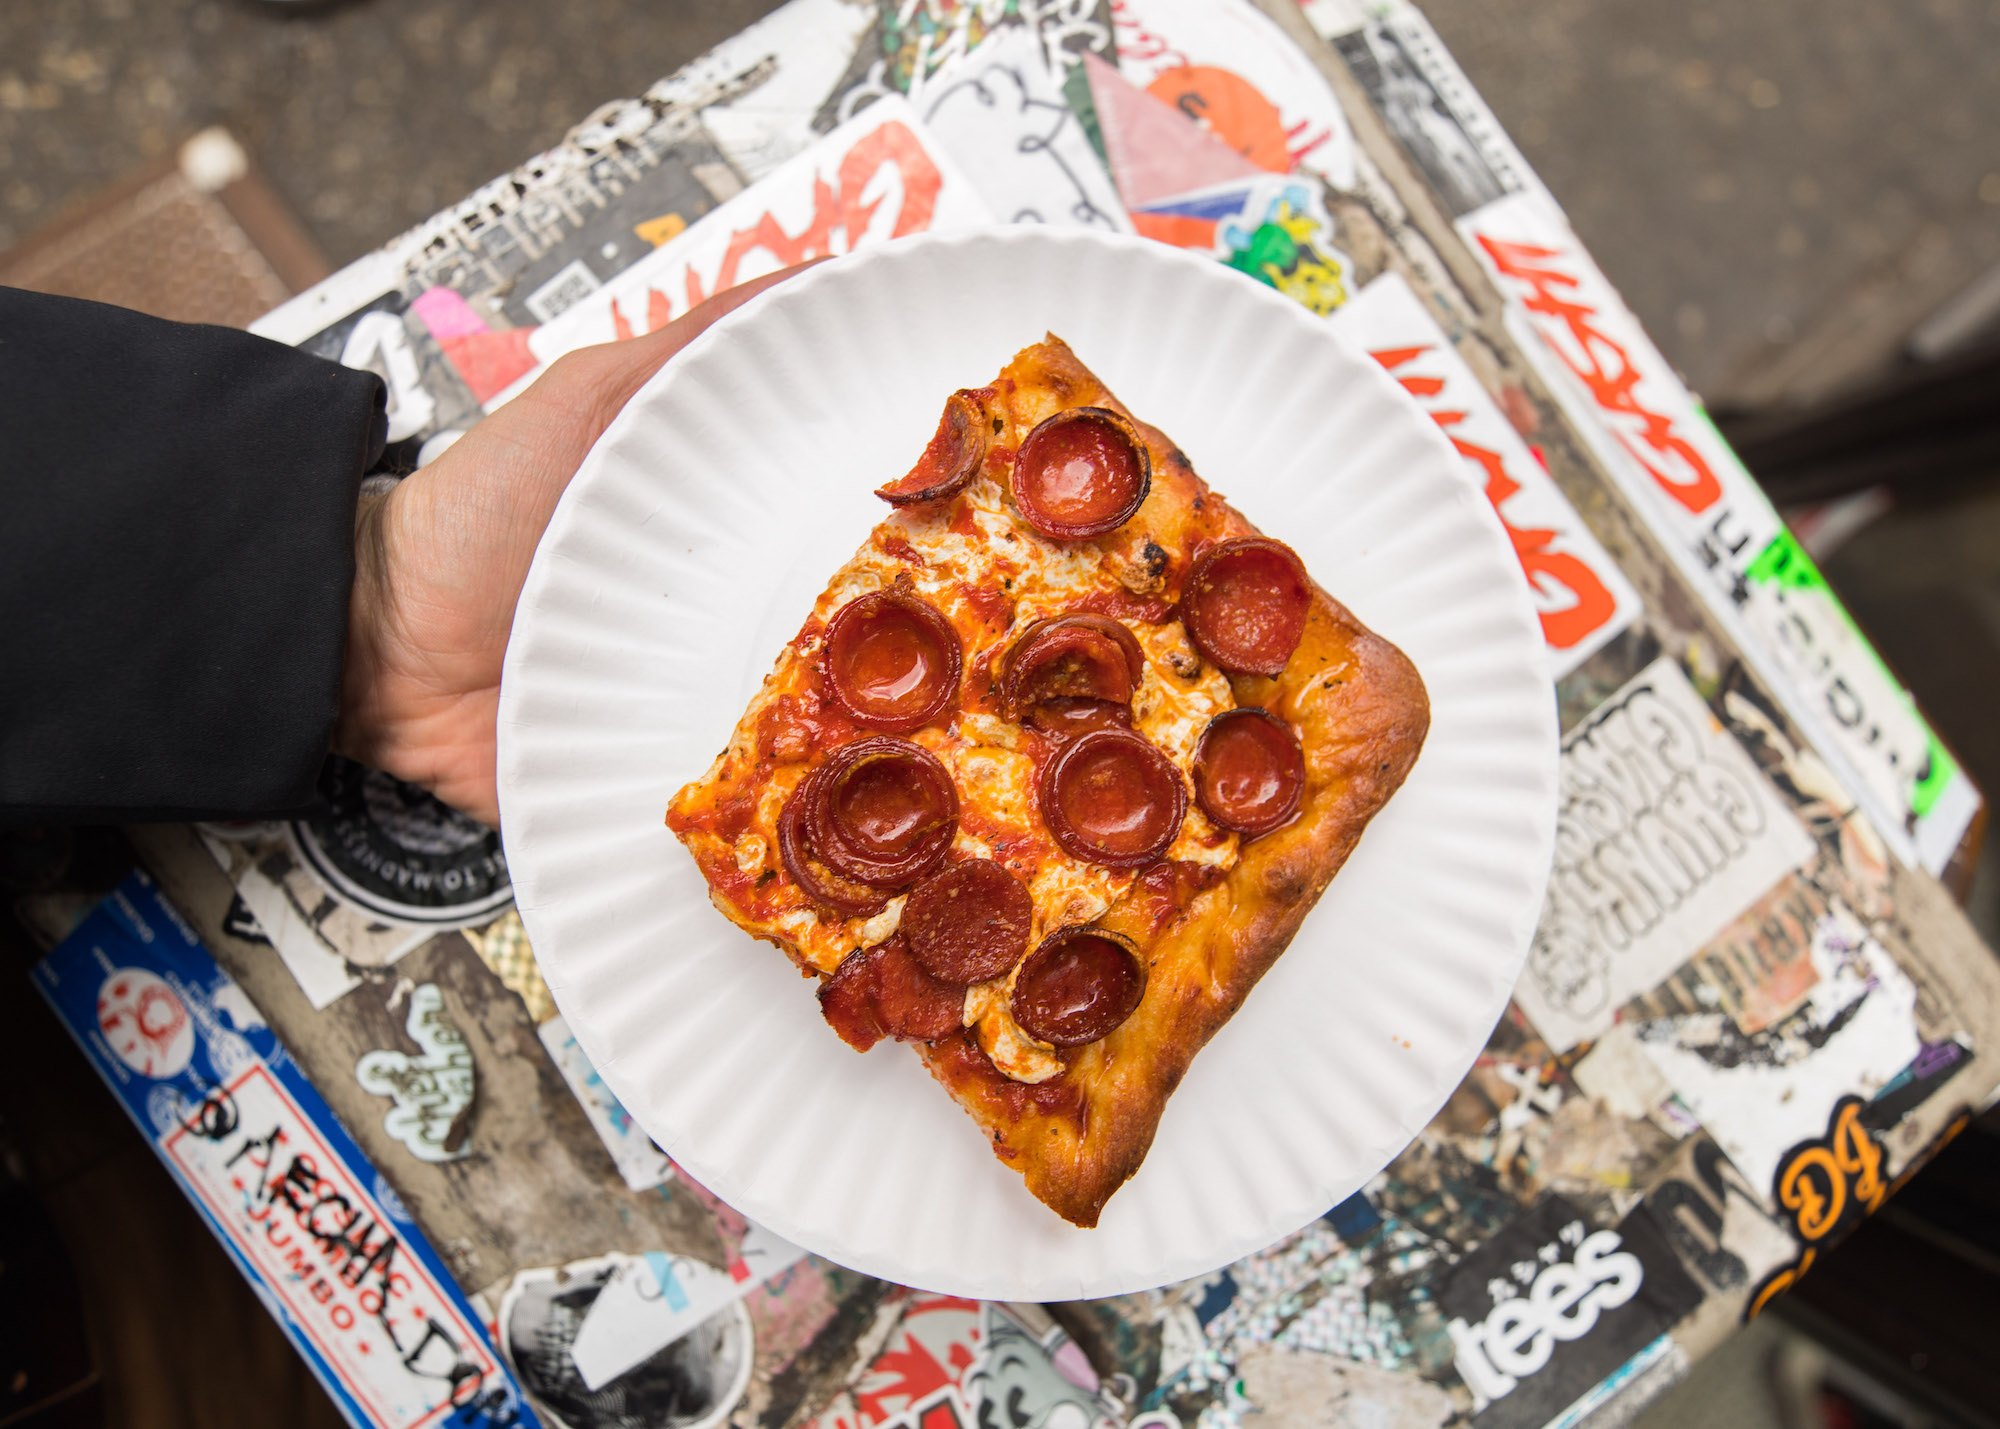 NYC's Most Famous Pepperoni Pizza Comes to LA for a Weekend Pop-Up